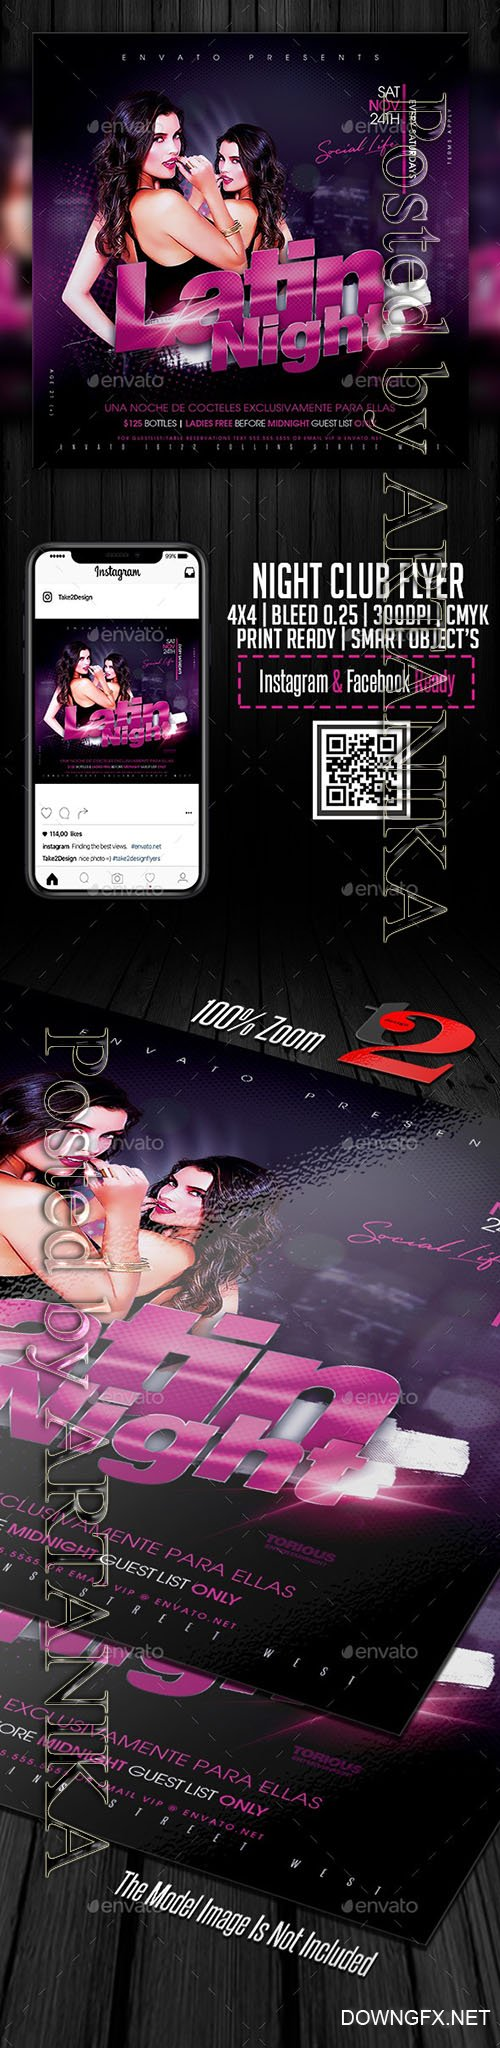 Night Club Flyer Template 23515134